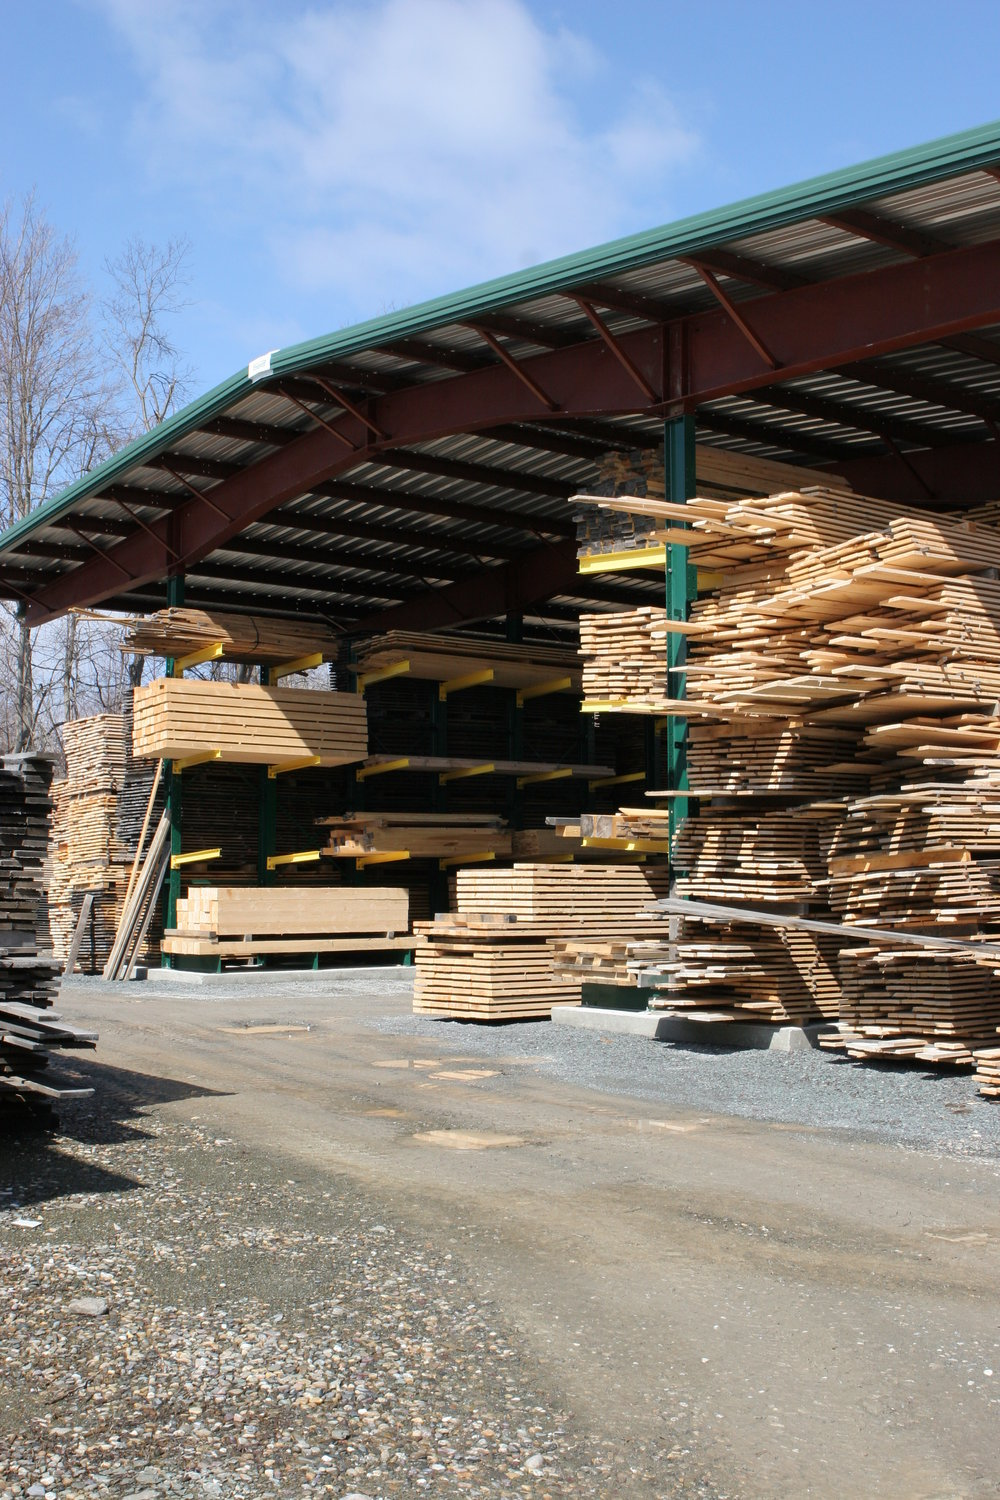 Visit our extensive yard